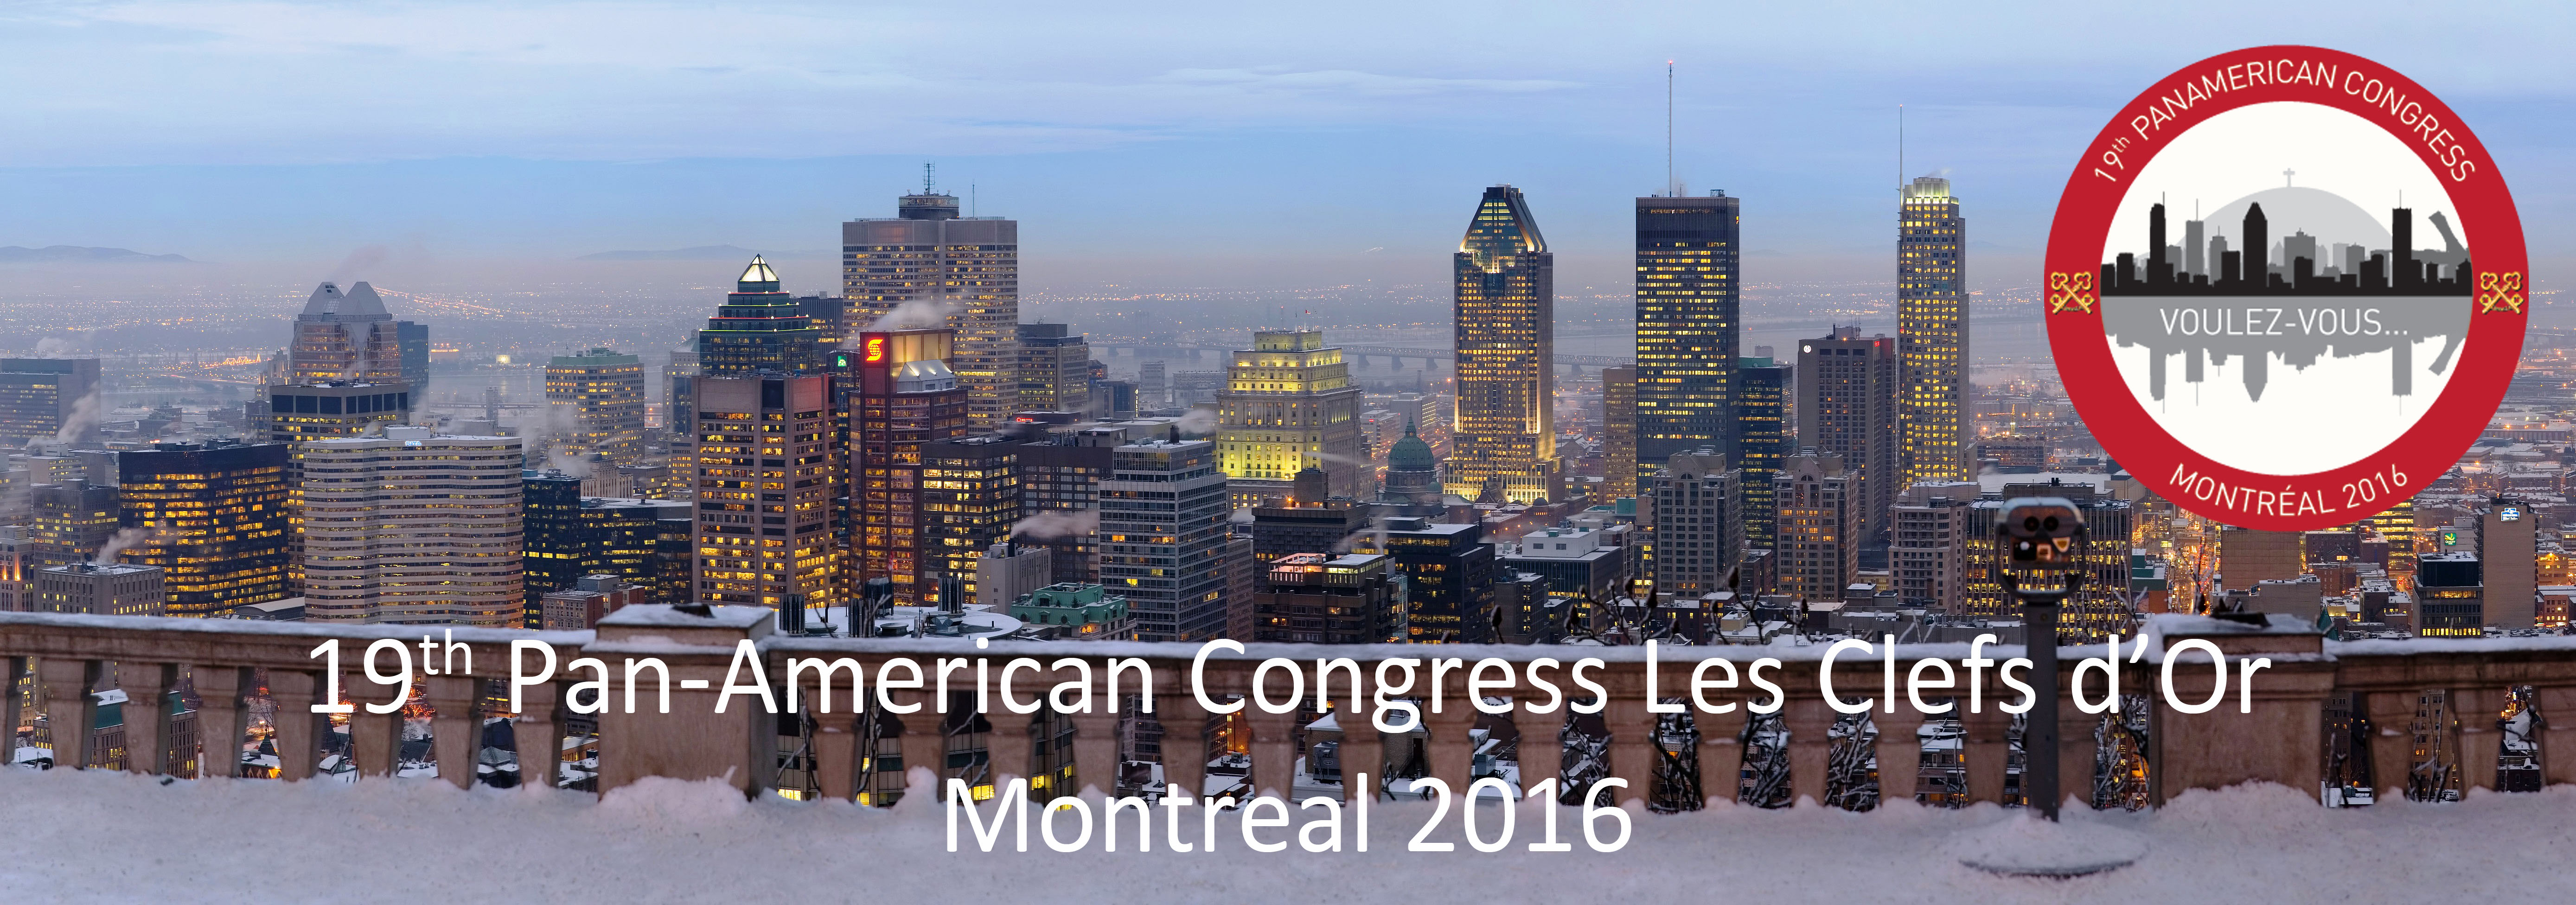 The 19th Pan-American Congress Les Clefs d'Or